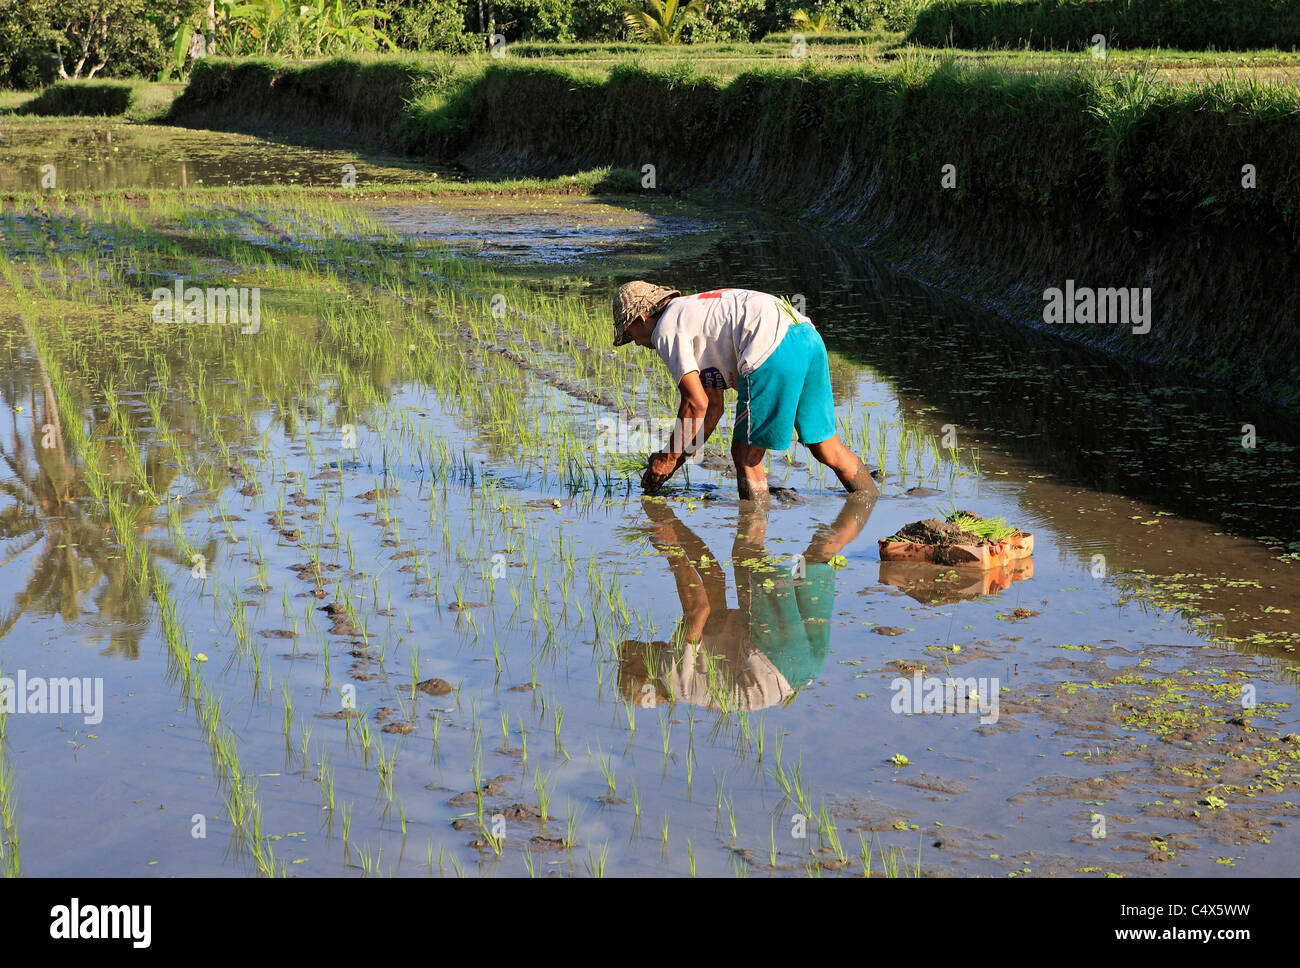 Farmer planting rice in his rice paddy. Ubud Bali, Indonesia - Stock Image